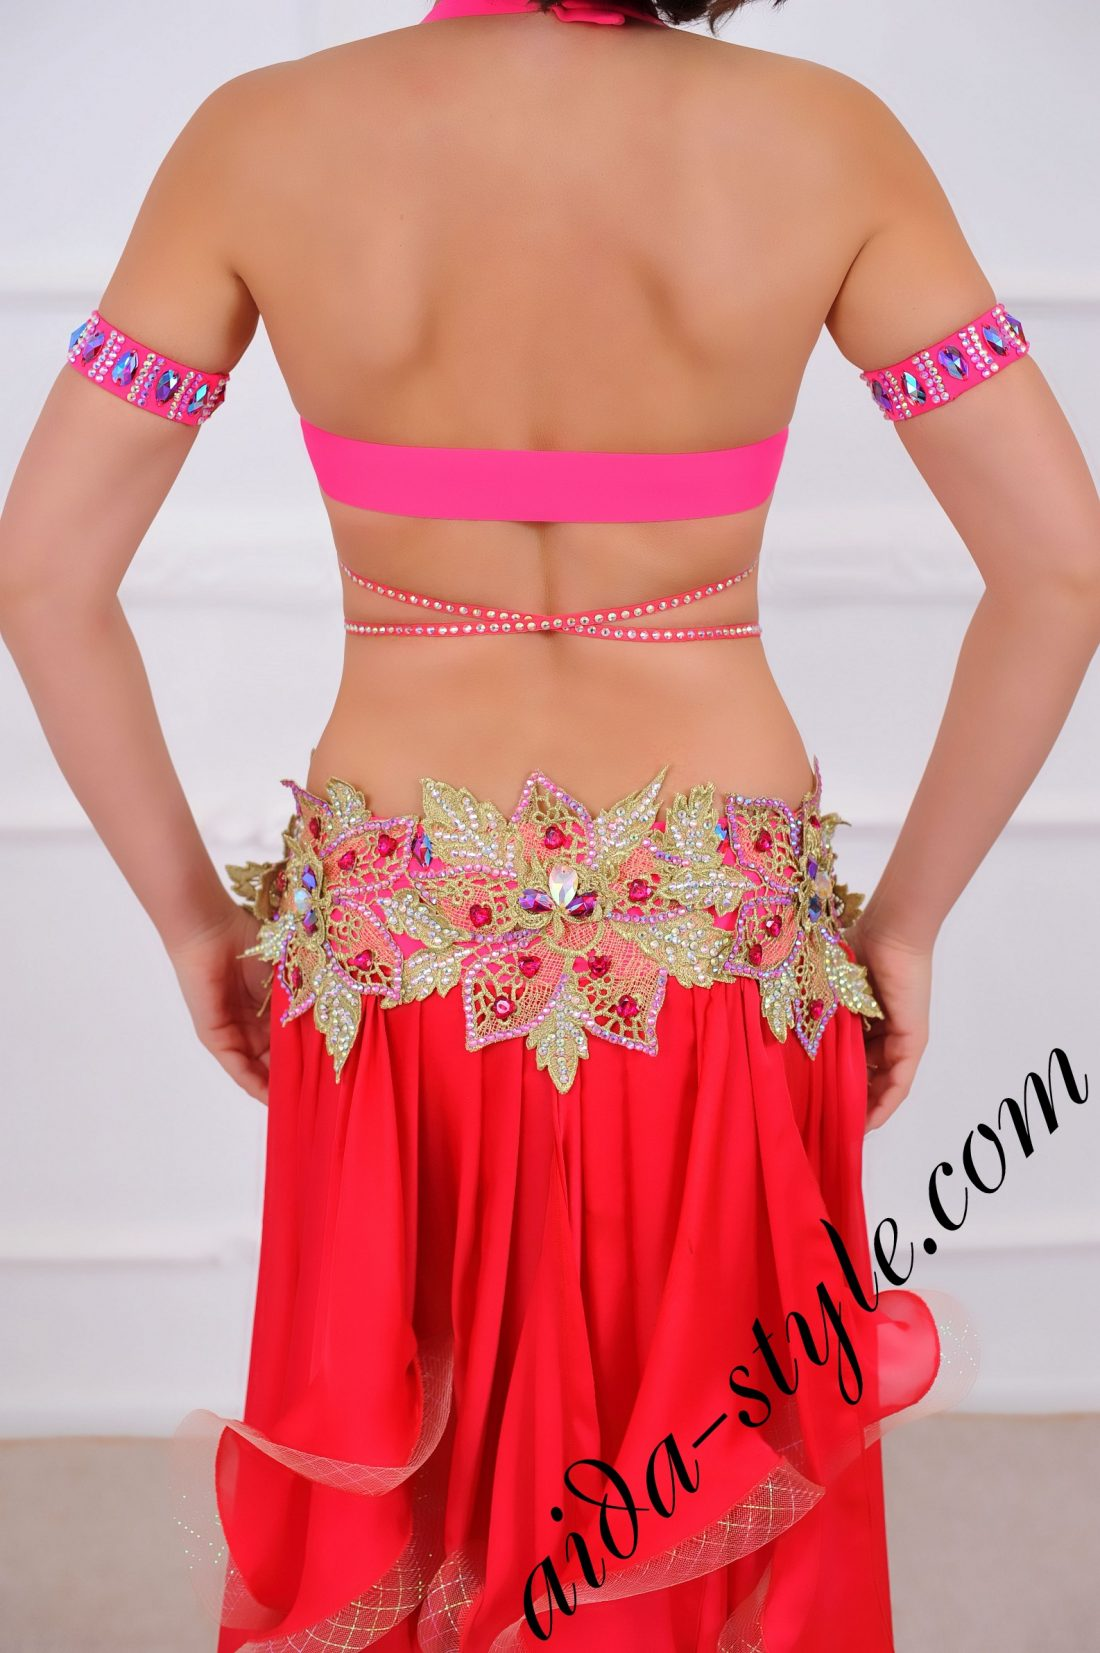 pro belly dance costume with wide circular skirt in coral and gold color